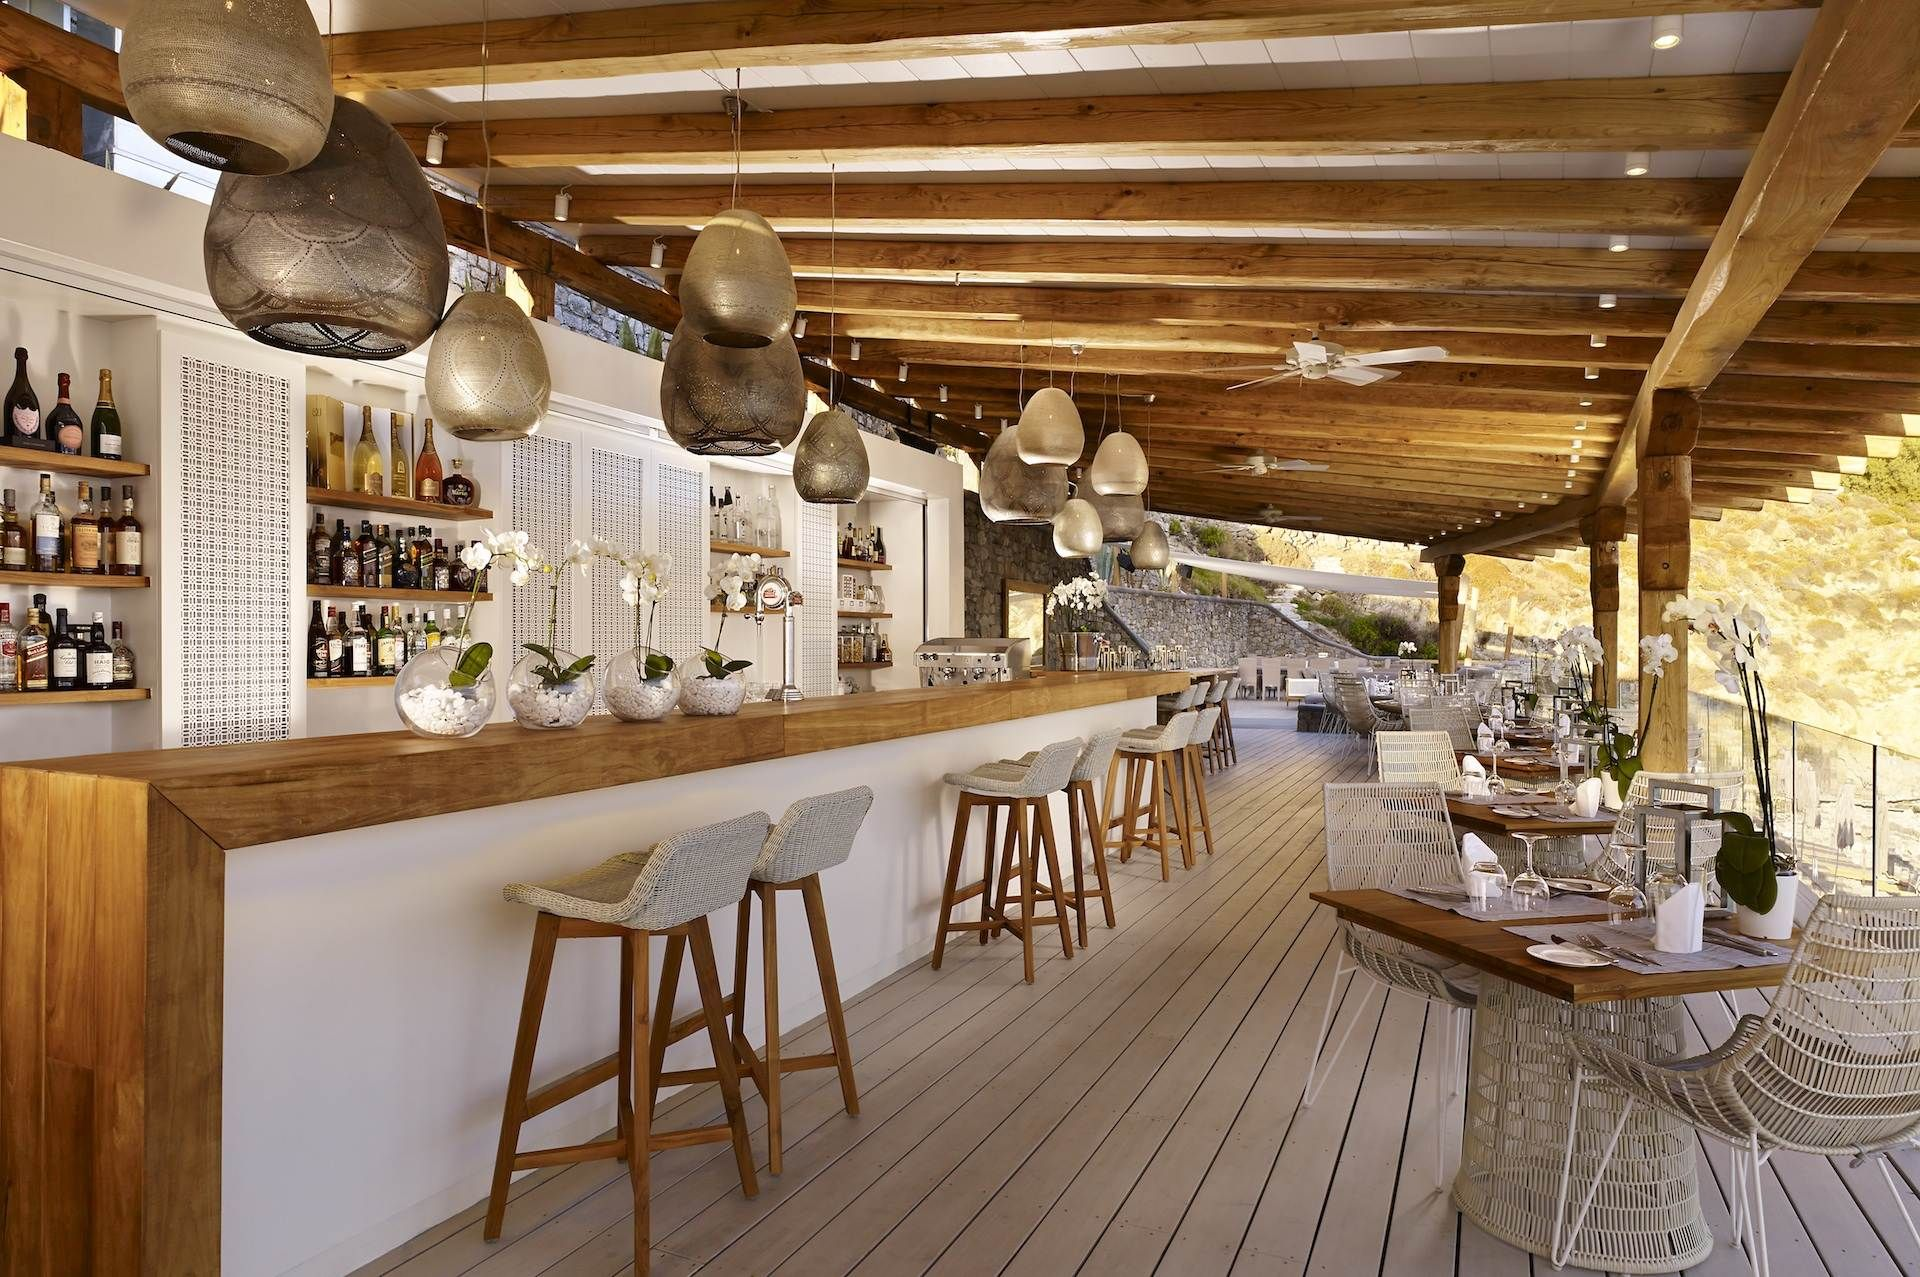 beach restaurant bay view: experience a hip beach restaurant in a